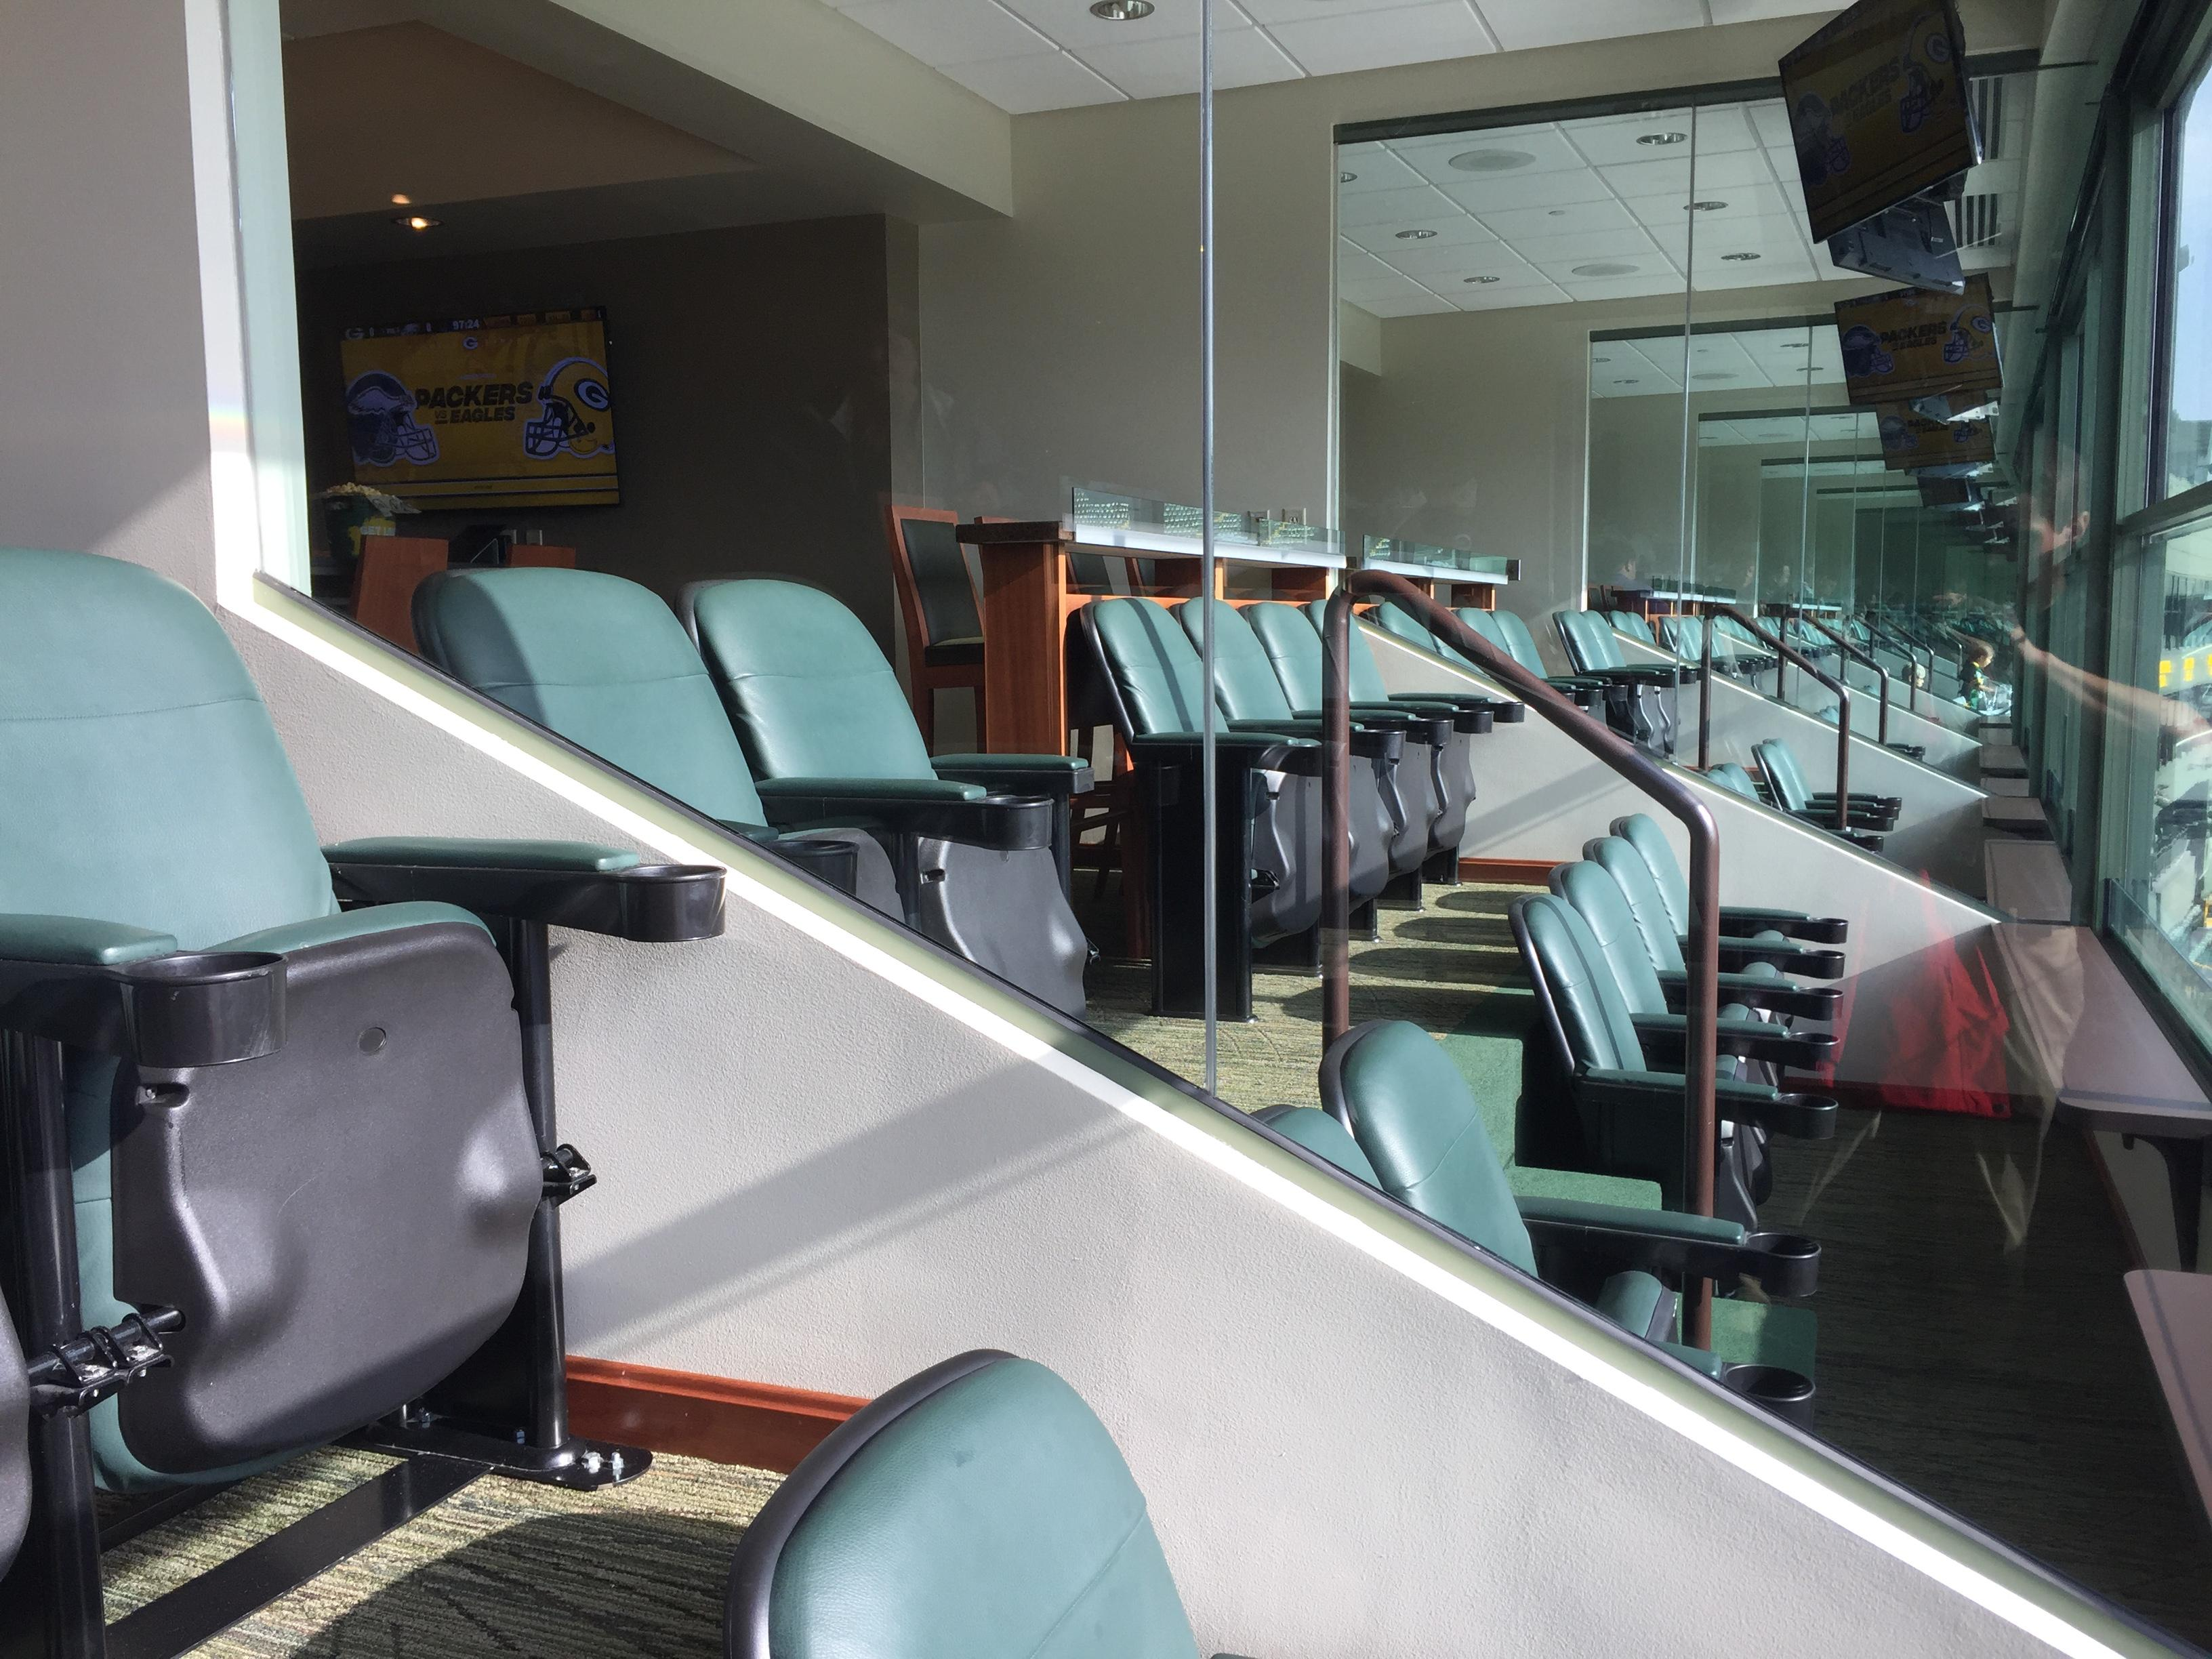 The Packers gave FOX 11 a sneak peek at the newly renovated luxury box seats at Lambeau Field ahead of the team's pre-season opener against the Philadelphia Eagles, August 10, 2017. (WLUK/Ben Krumholz)